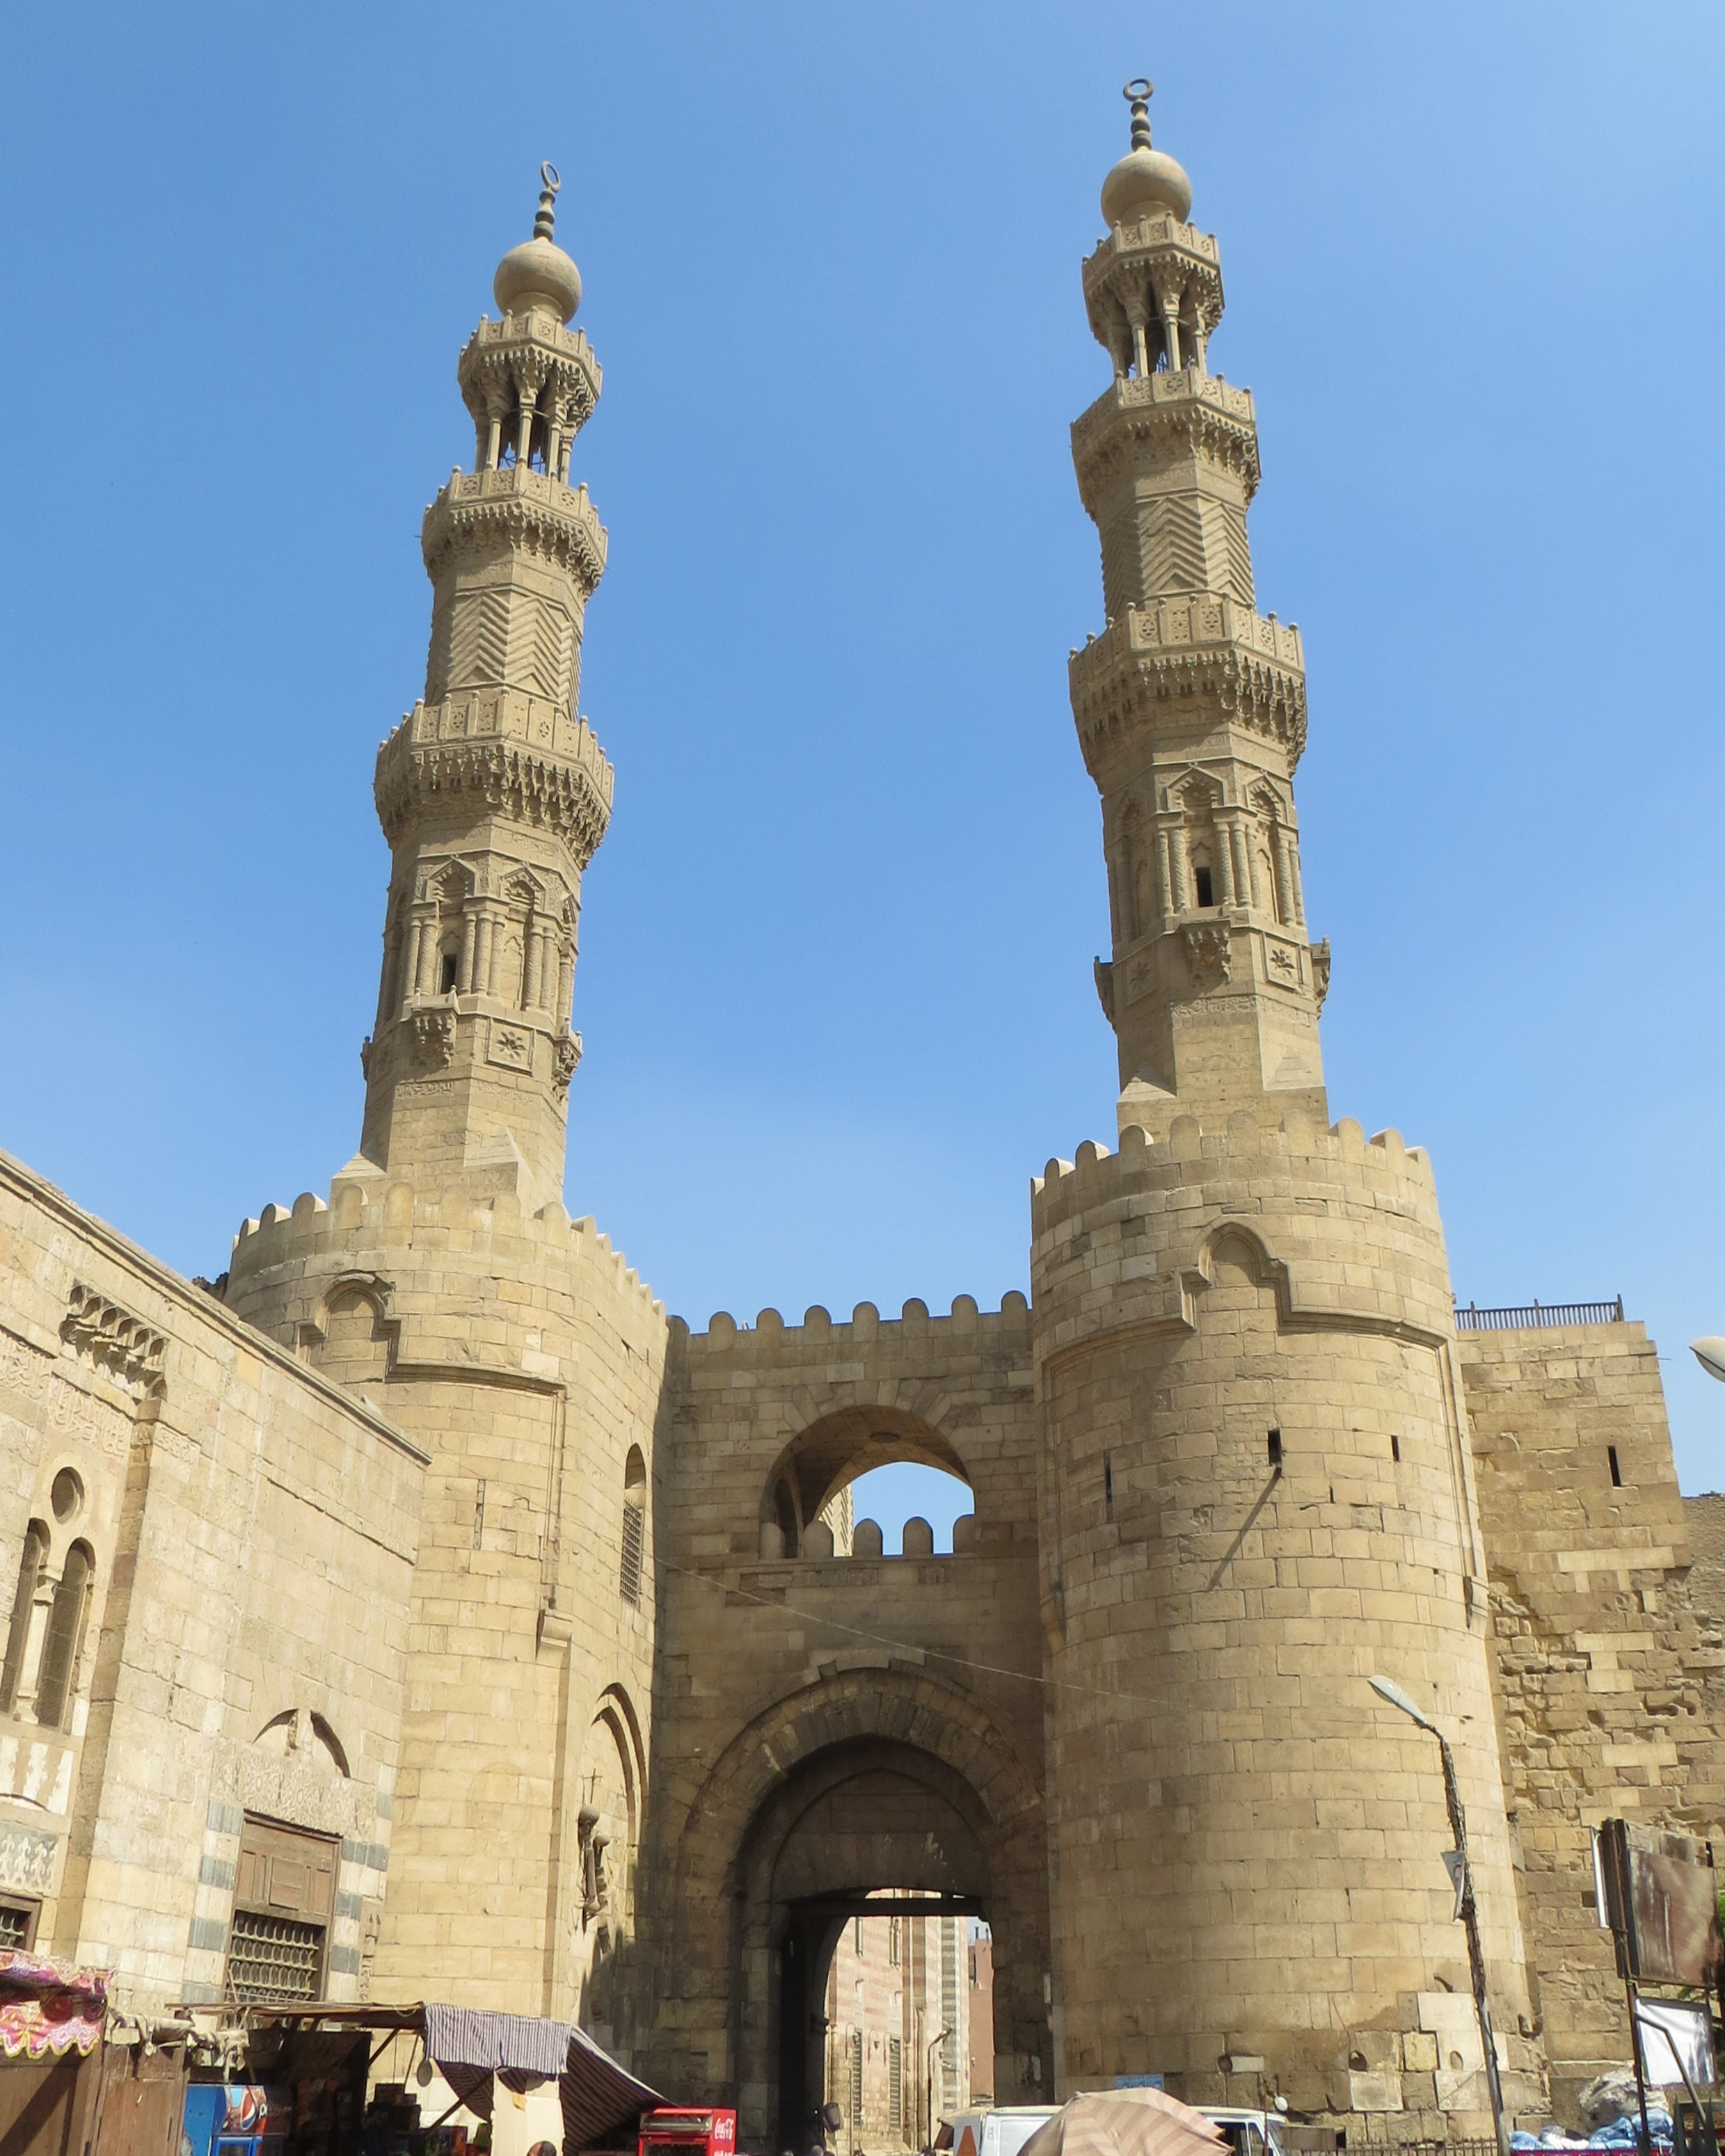 Cairo old Gates